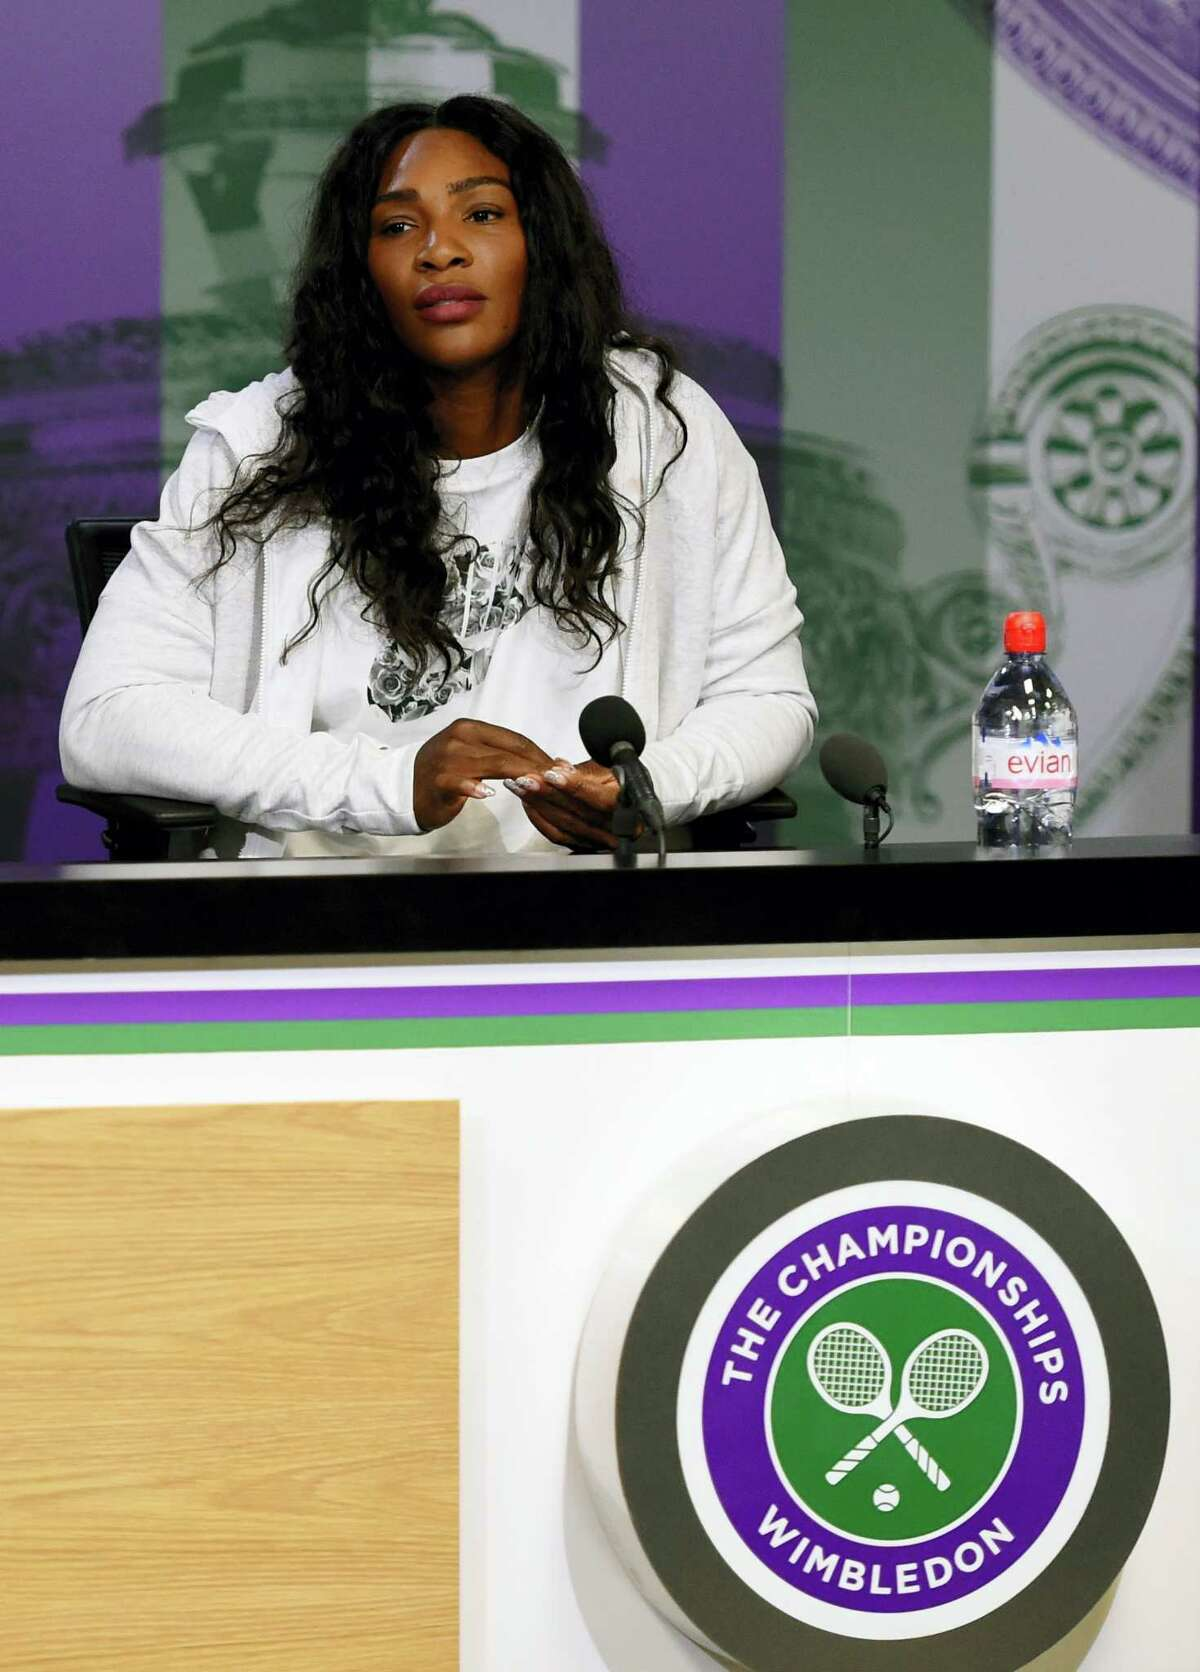 Serena Williams answers questions at a press conference at The All England Lawn Tennis Club on Sunday.